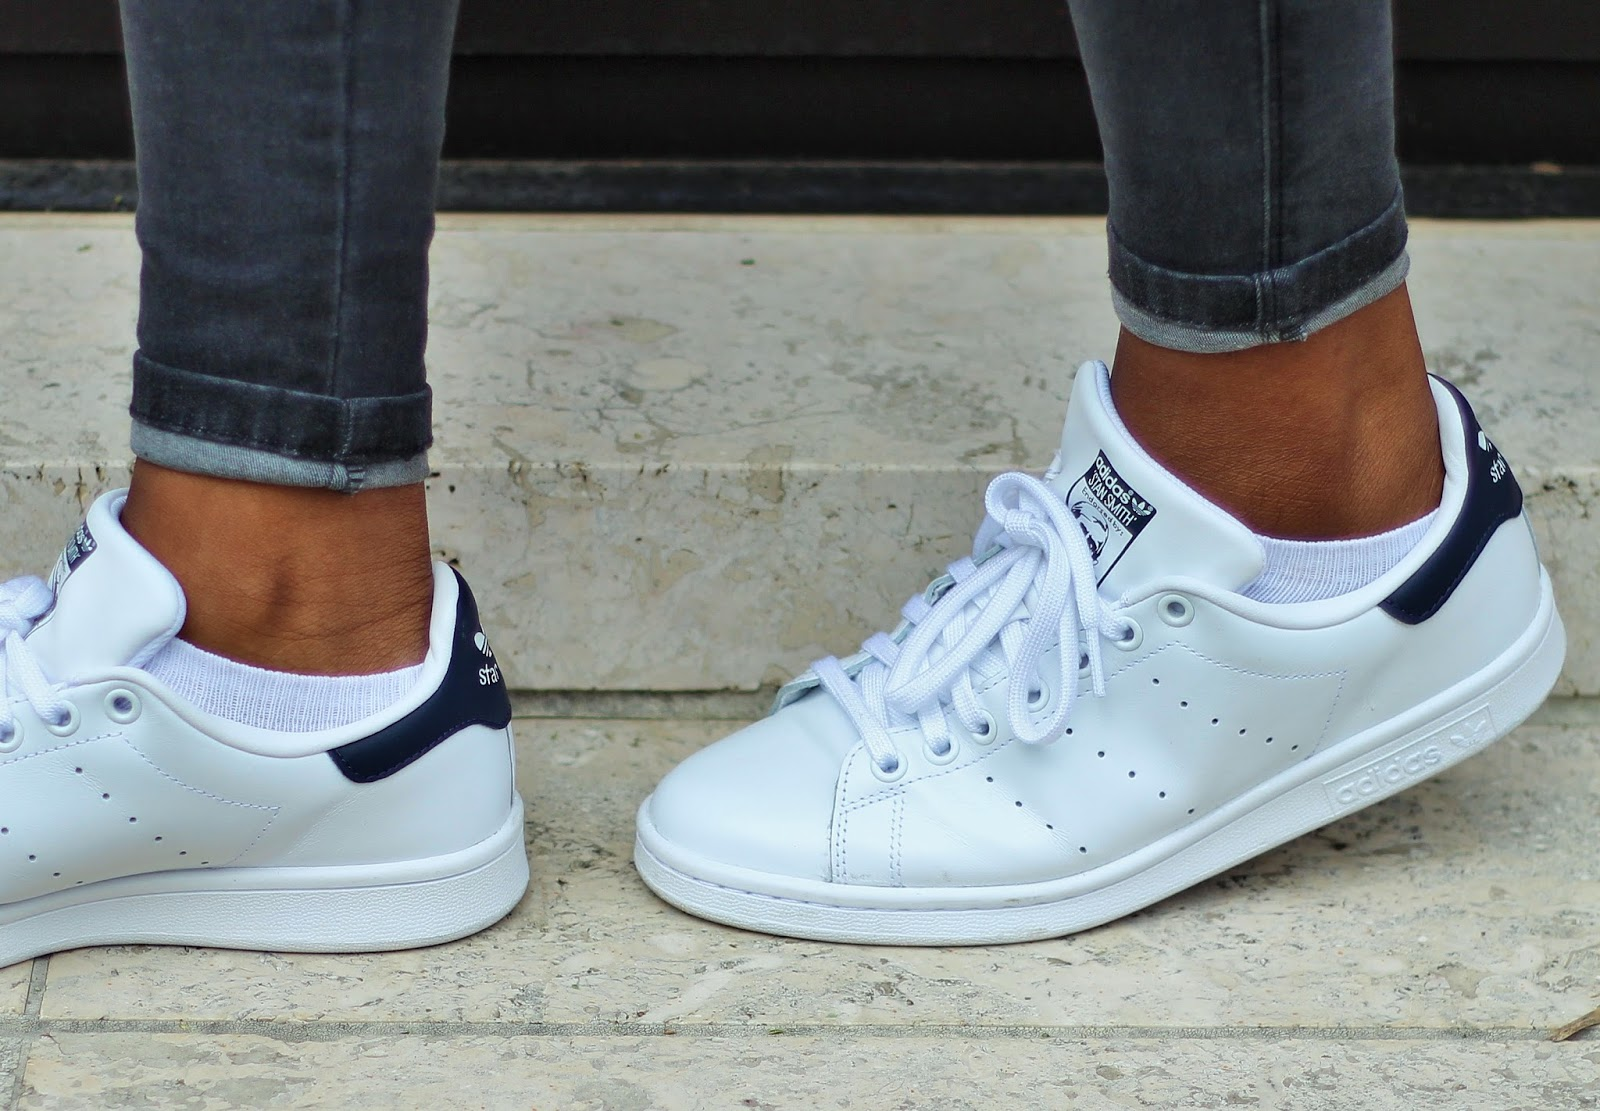 Ami Coco: SIND ADIDAS STAN SMITH ZU BASIC? BIN ICH NUN BASIC?